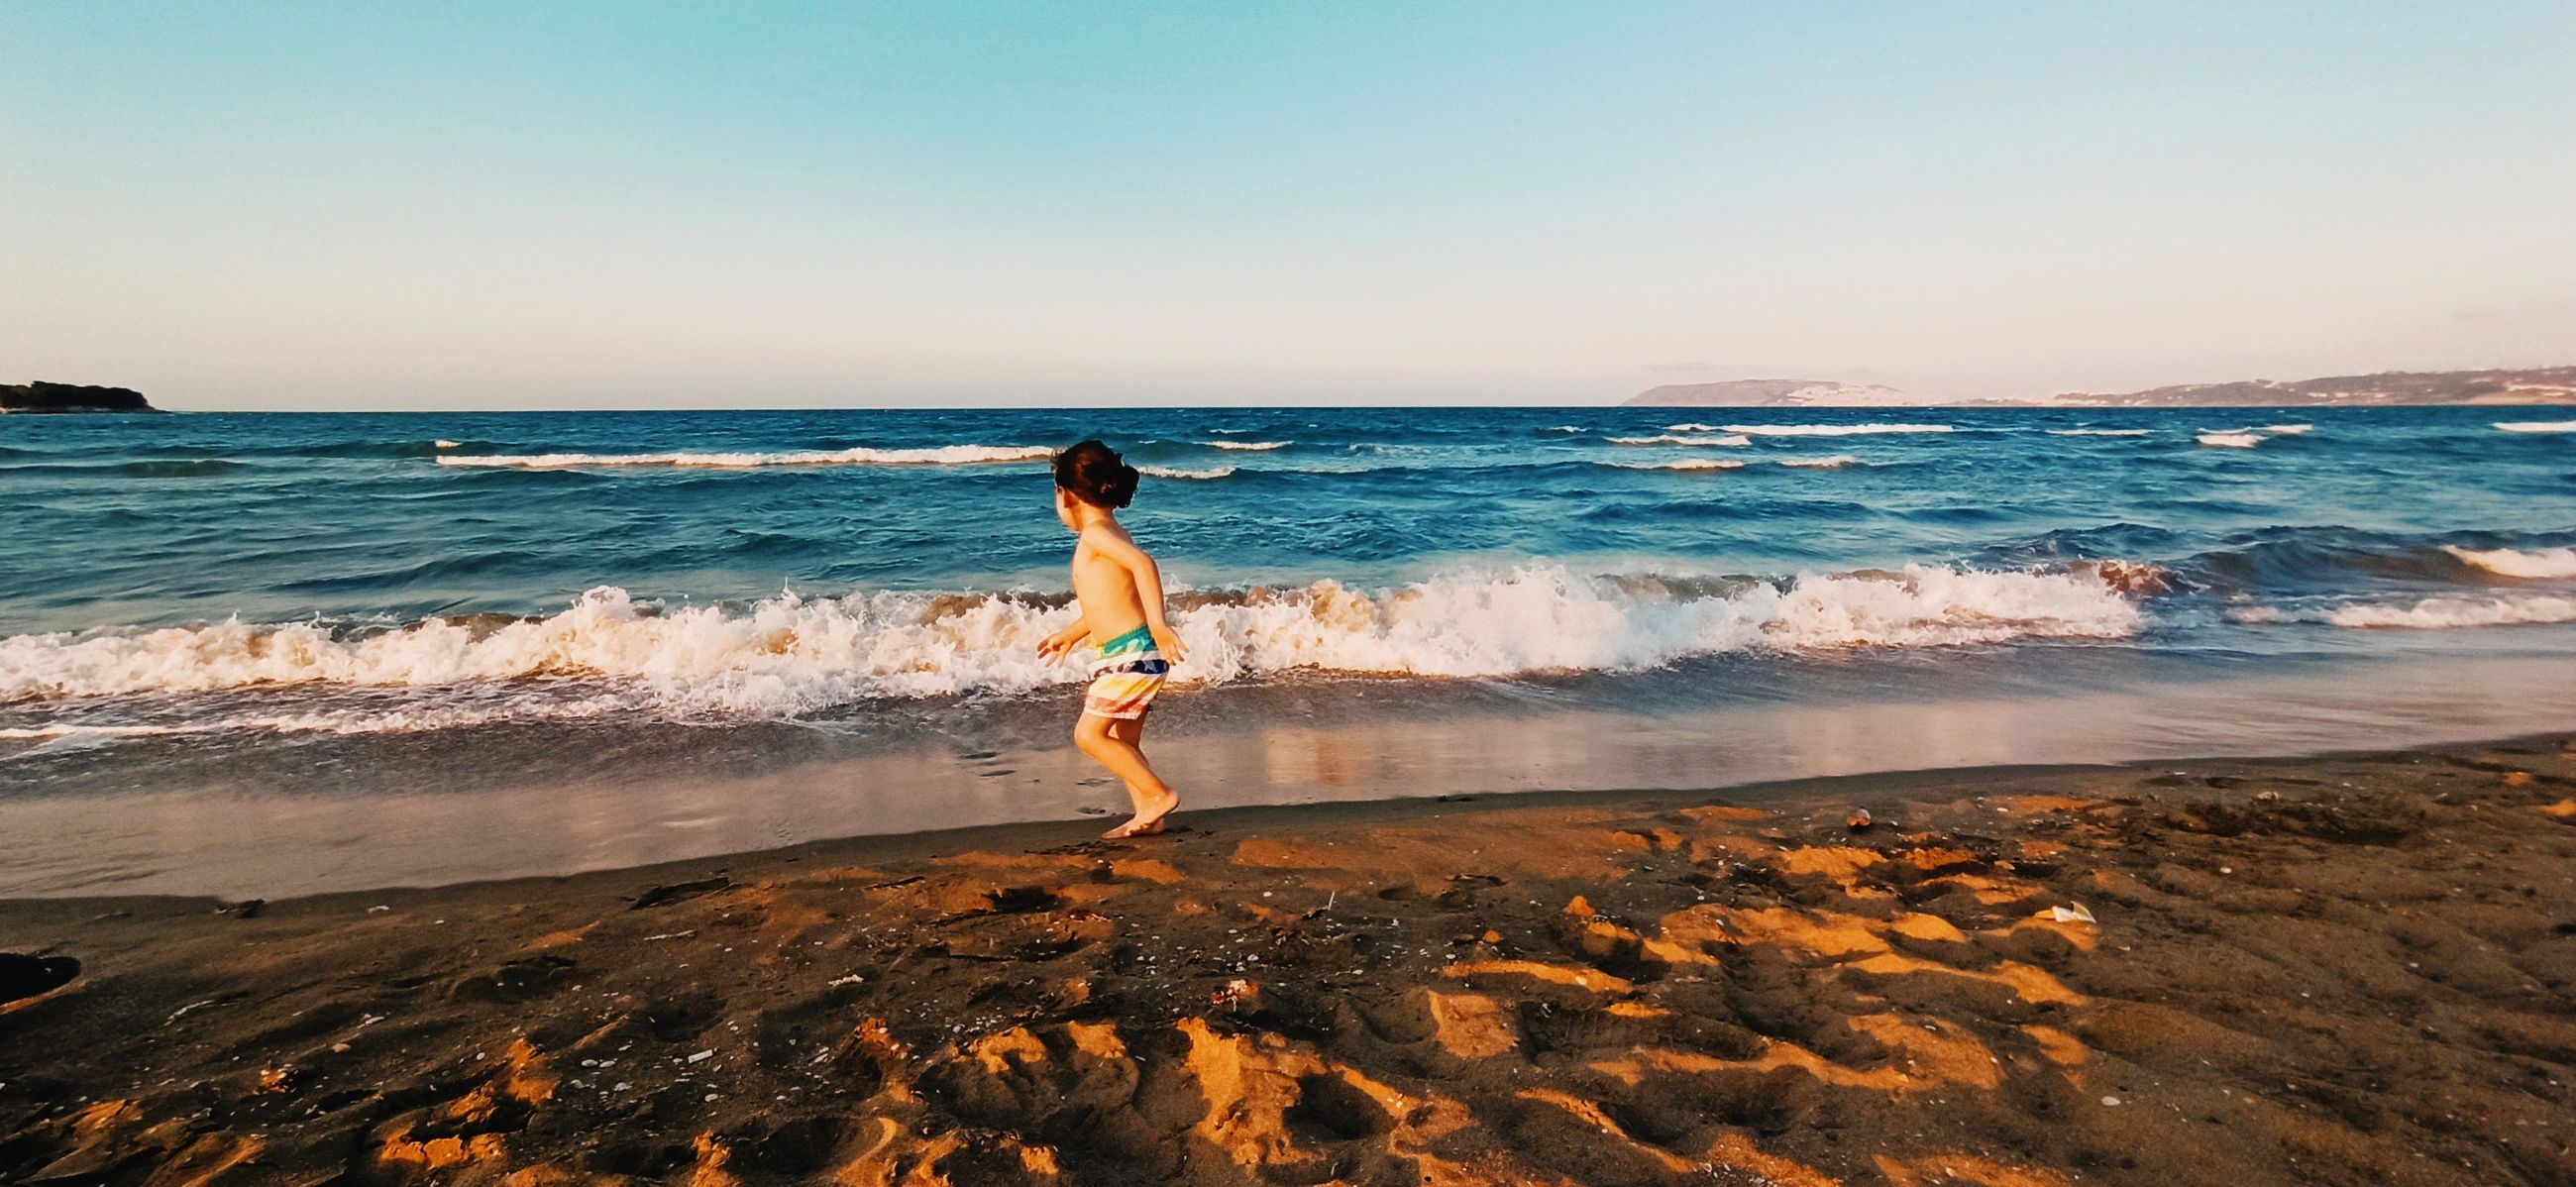 sea, water, land, beach, sky, ocean, body of water, shore, one person, wave, motion, horizon, horizon over water, full length, sand, nature, beauty in nature, coast, leisure activity, holiday, vacation, trip, sports, sunset, scenics - nature, lifestyles, adult, standing, wind wave, clear sky, tranquility, women, clothing, idyllic, person, day, outdoors, rear view, surfing, young adult, sunlight, child, water sports, travel destinations, tranquil scene, childhood, summer, enjoyment, rock, travel, relaxation